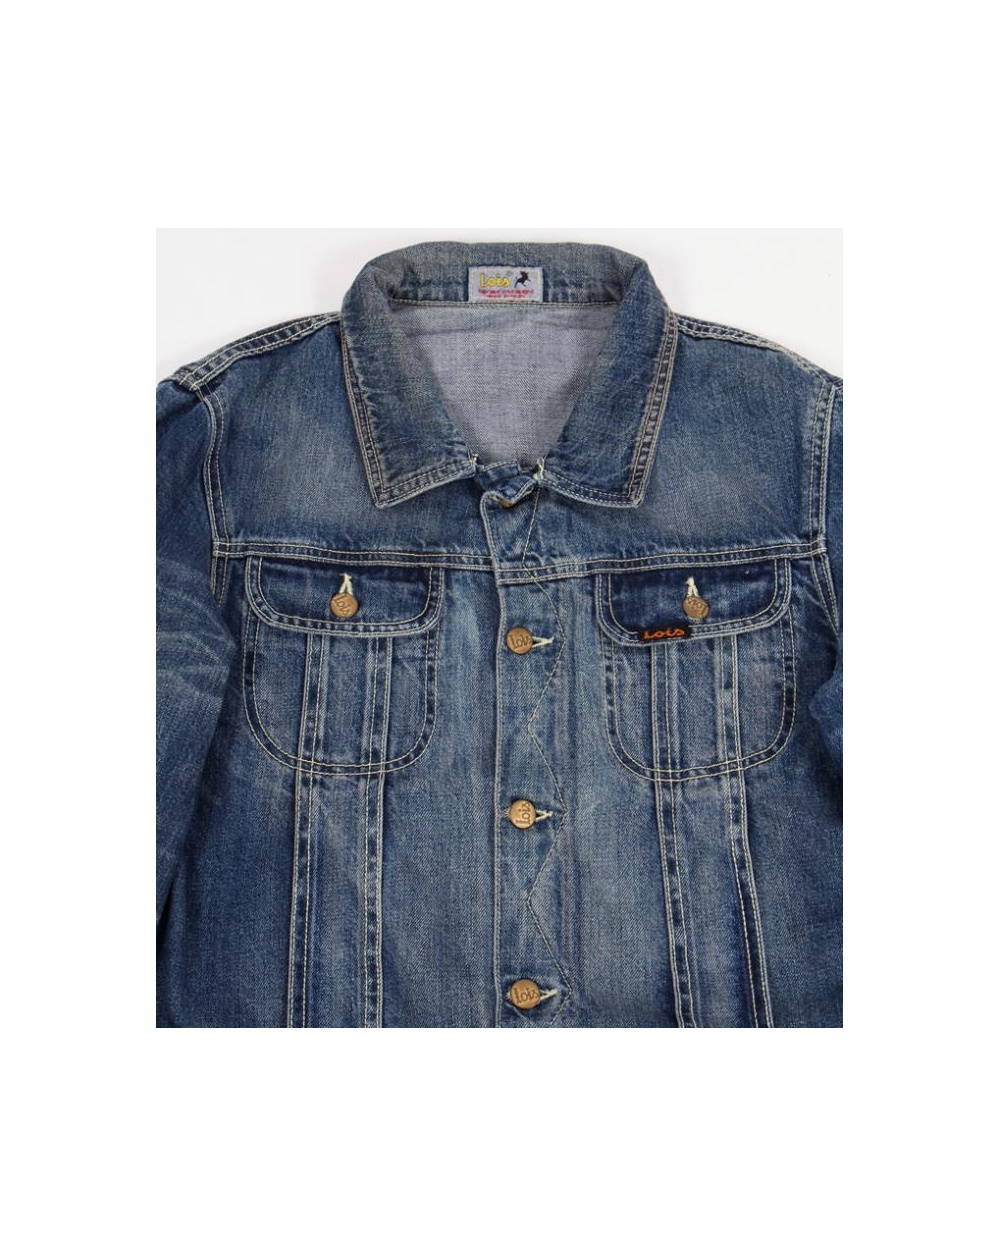 Find great deals on eBay for light wash denim jacket. Shop with confidence.